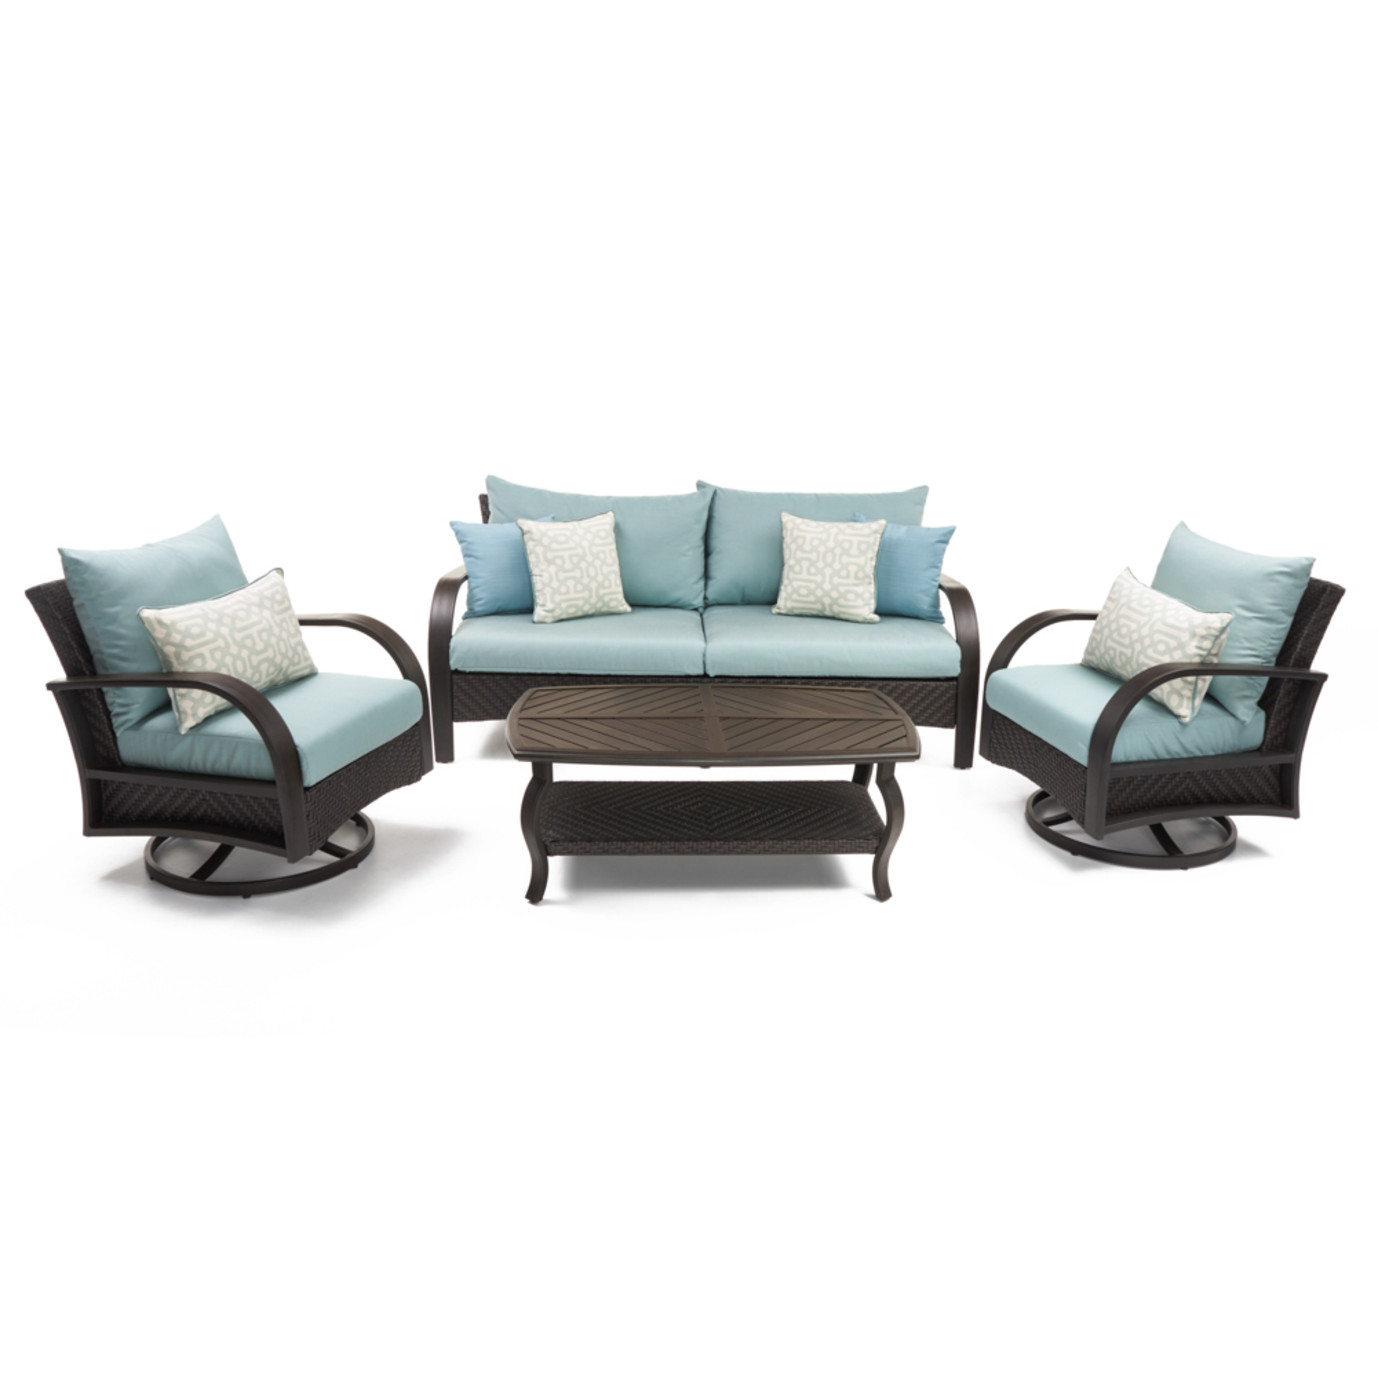 Barcelo™ 4 Piece Motion Club & Sofa Set - Spa Blue